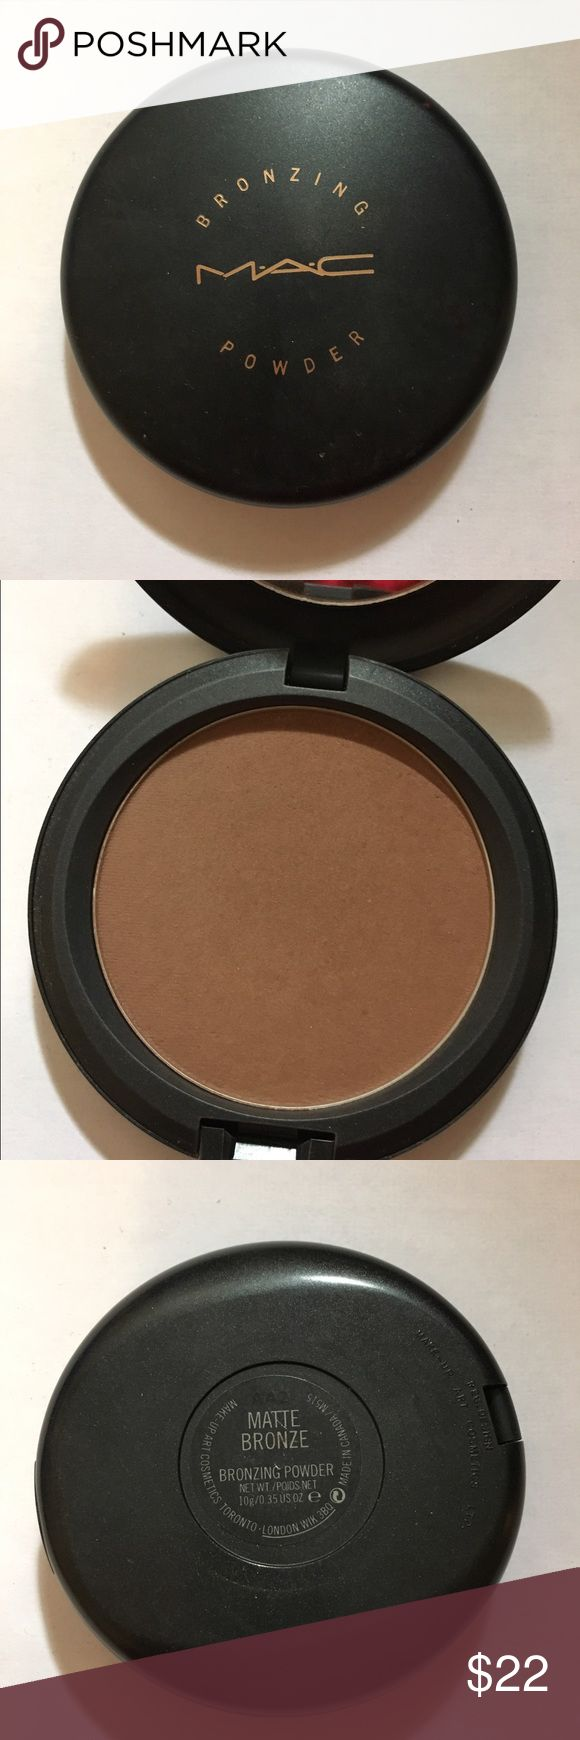 MAC bronzer - Matte Bronze Slightly used. Awesome contour color MAC Cosmetics Makeup Bronzer